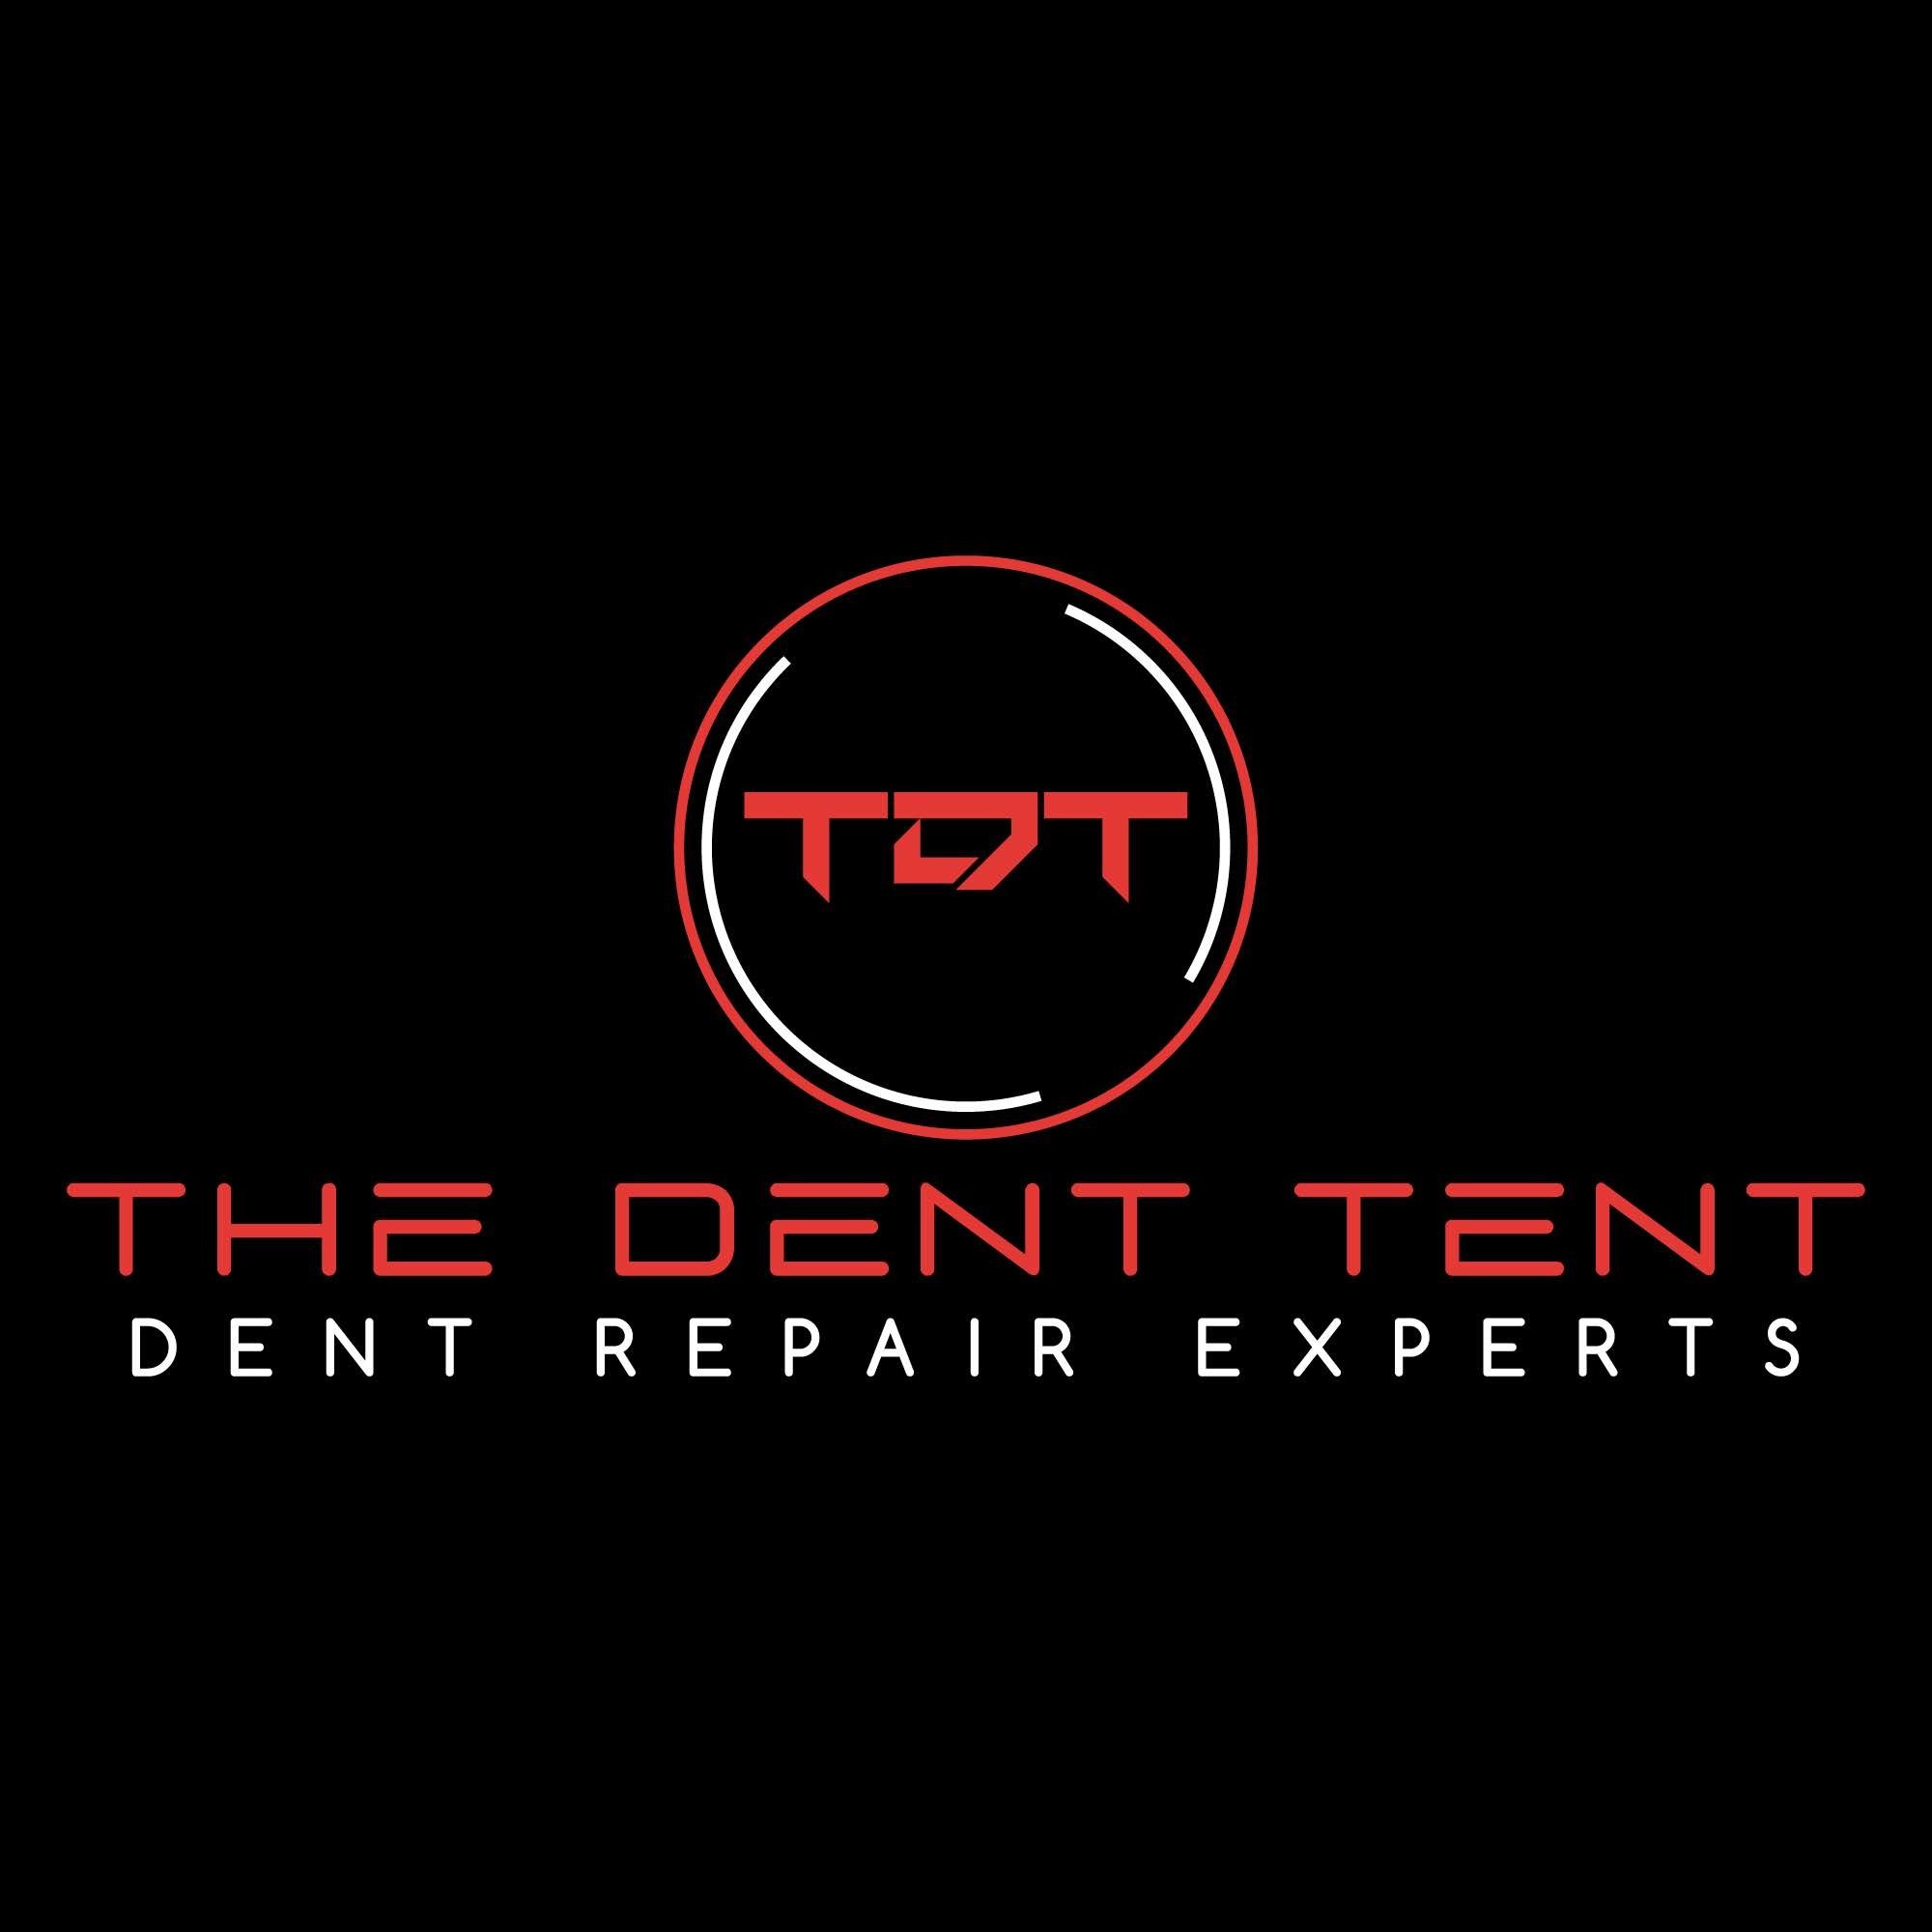 THE DENT TENT